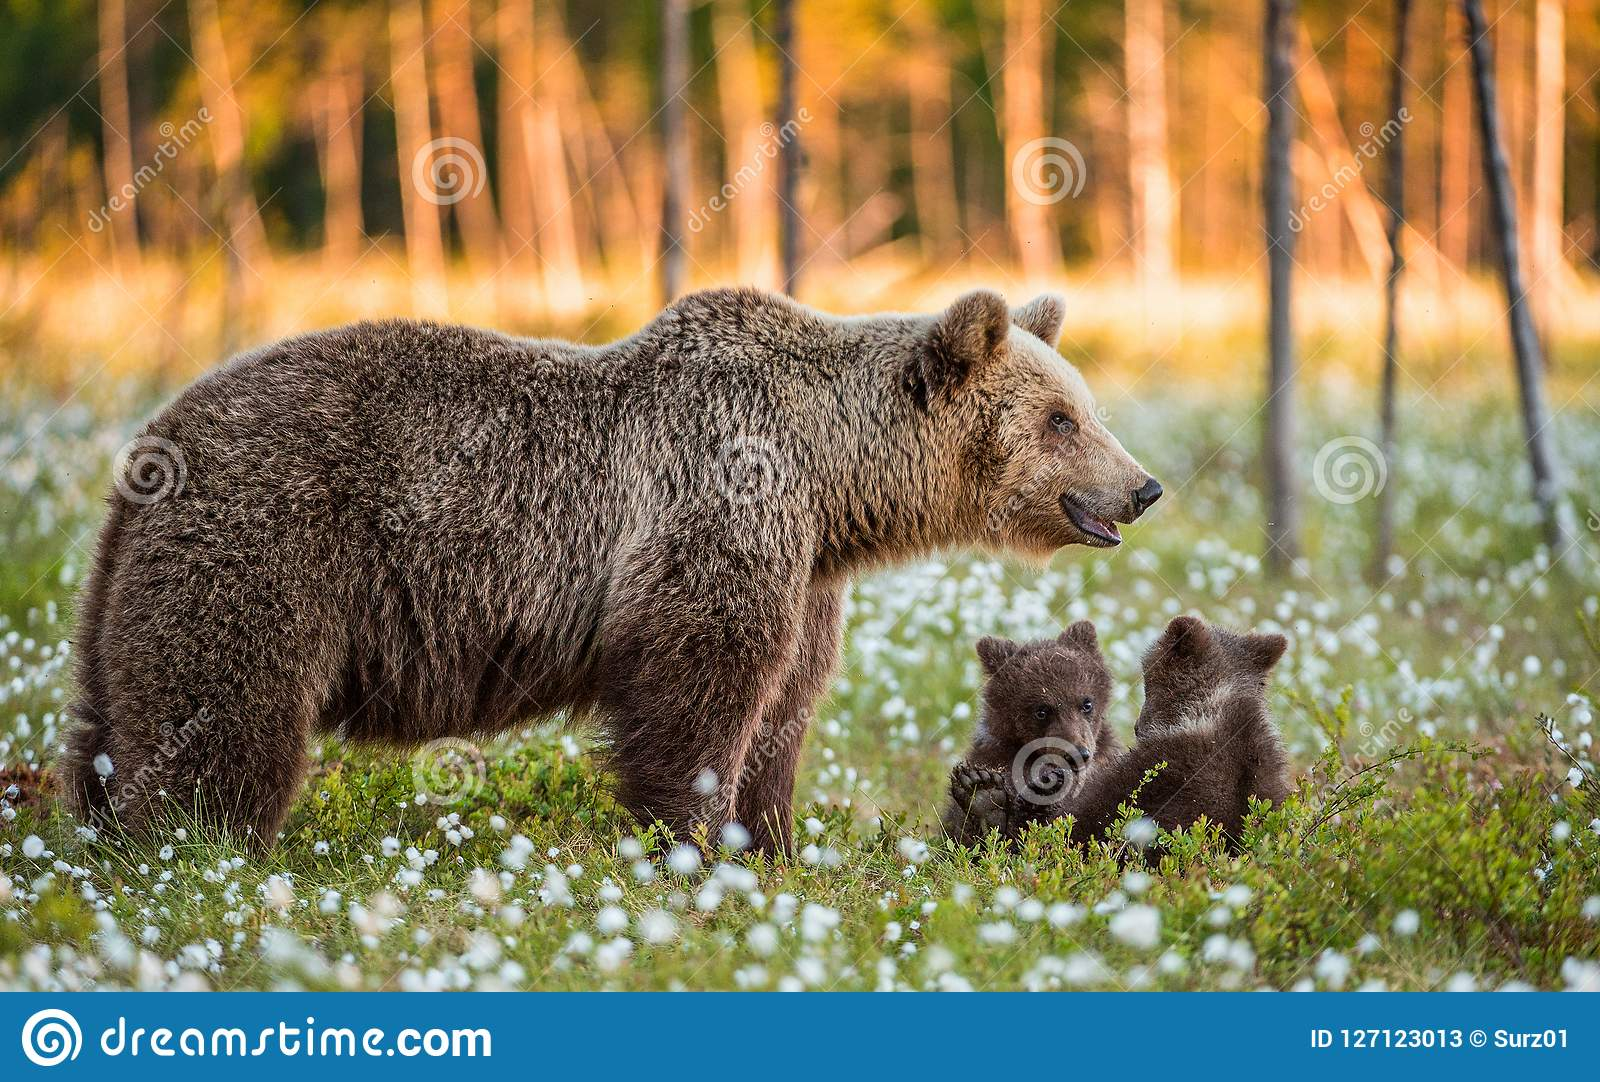 She-bear and playfull bear cubs. White flowers on the bog in the summer forest.